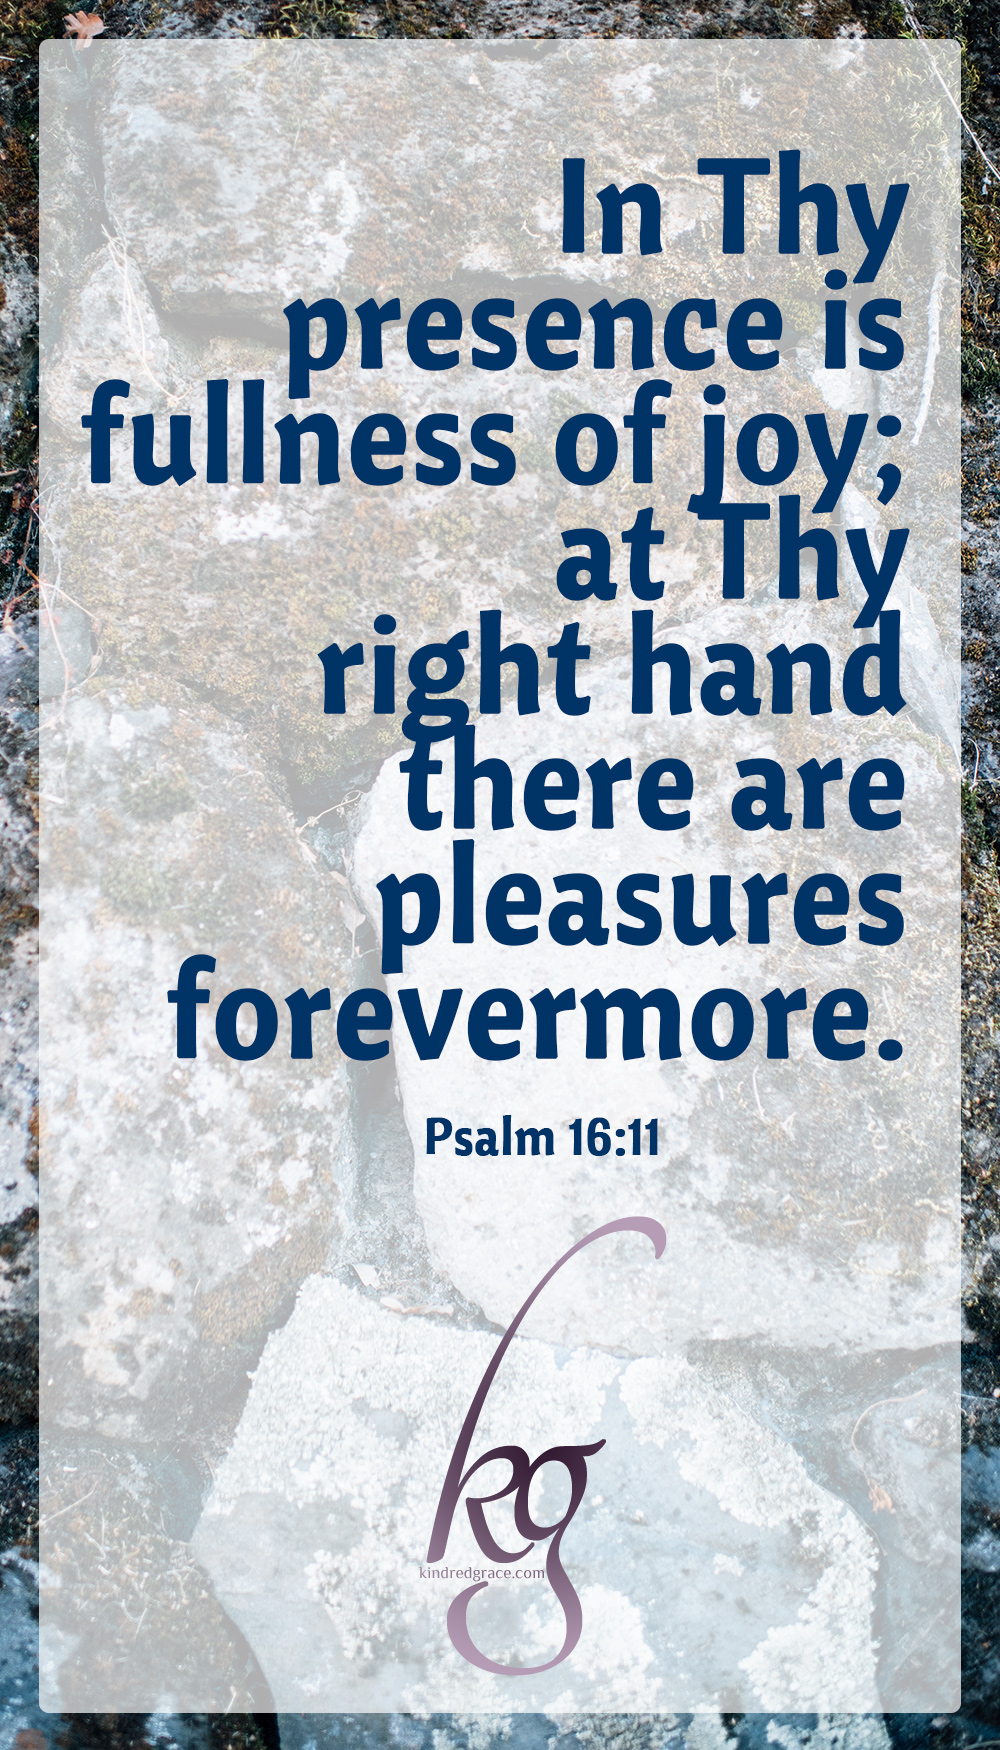 "The psalmist said, ""In Thy presence is fullness of joy; at Thy right hand there are pleasures forevermore."" Jesus, for the joy that was set before Him, endured the cross. Let us not label ourselves followers of Jesus Christ until we have gladly and unreservedly taken up that cross and said from our hearts, ""I will follow You, Lord. Work out Your whole will in my life at any cost, now and forever."" via @KindredGrace"